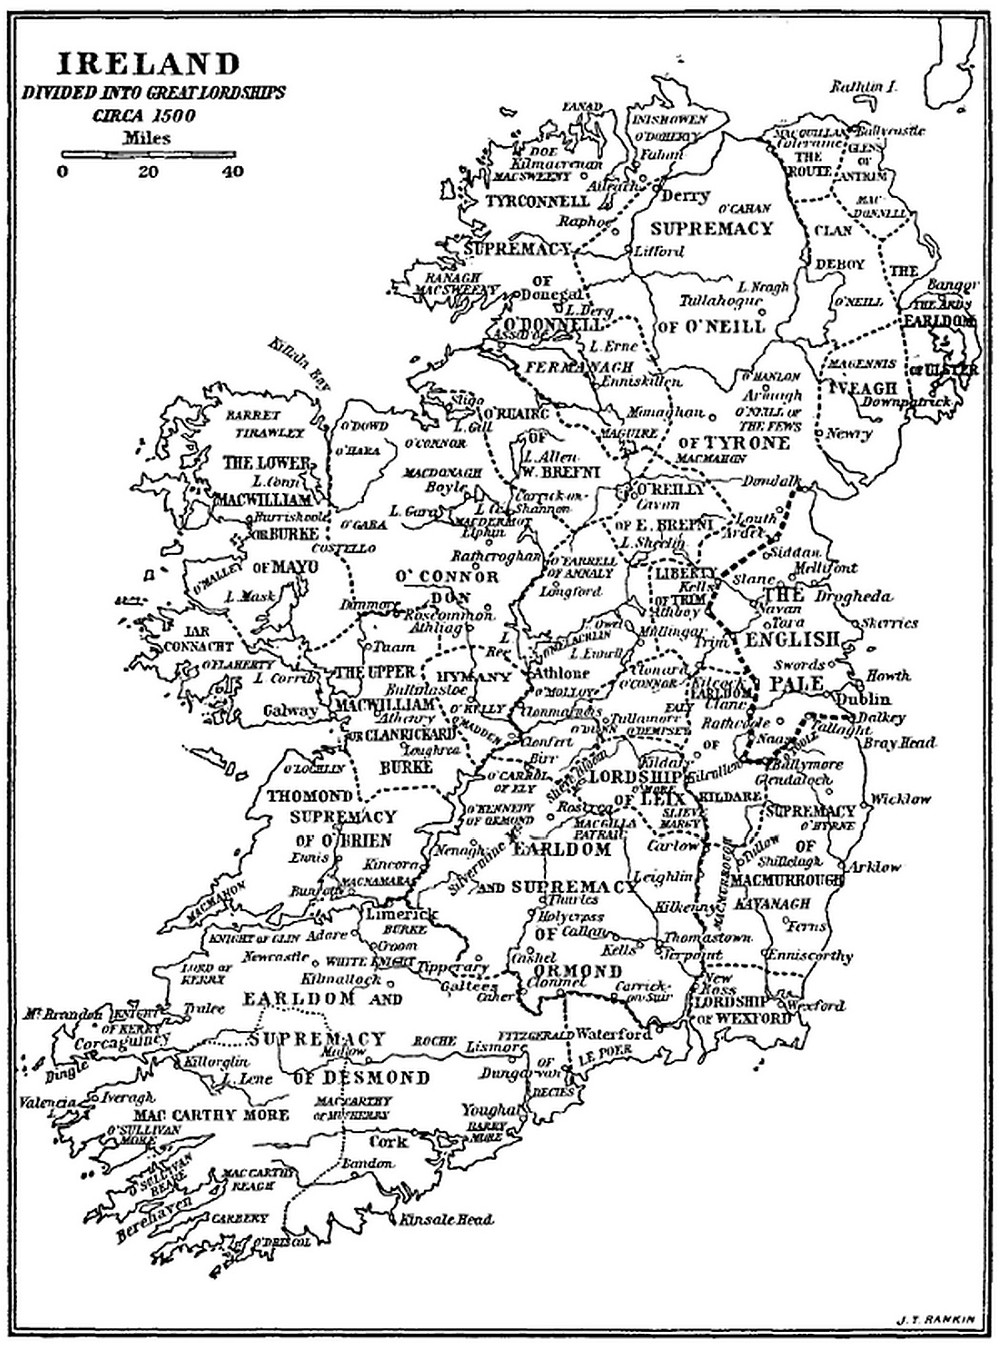 Ireland Divided into Great Lordships c. 1500 Apdx - Curtis, Medieval Ireland.jpg